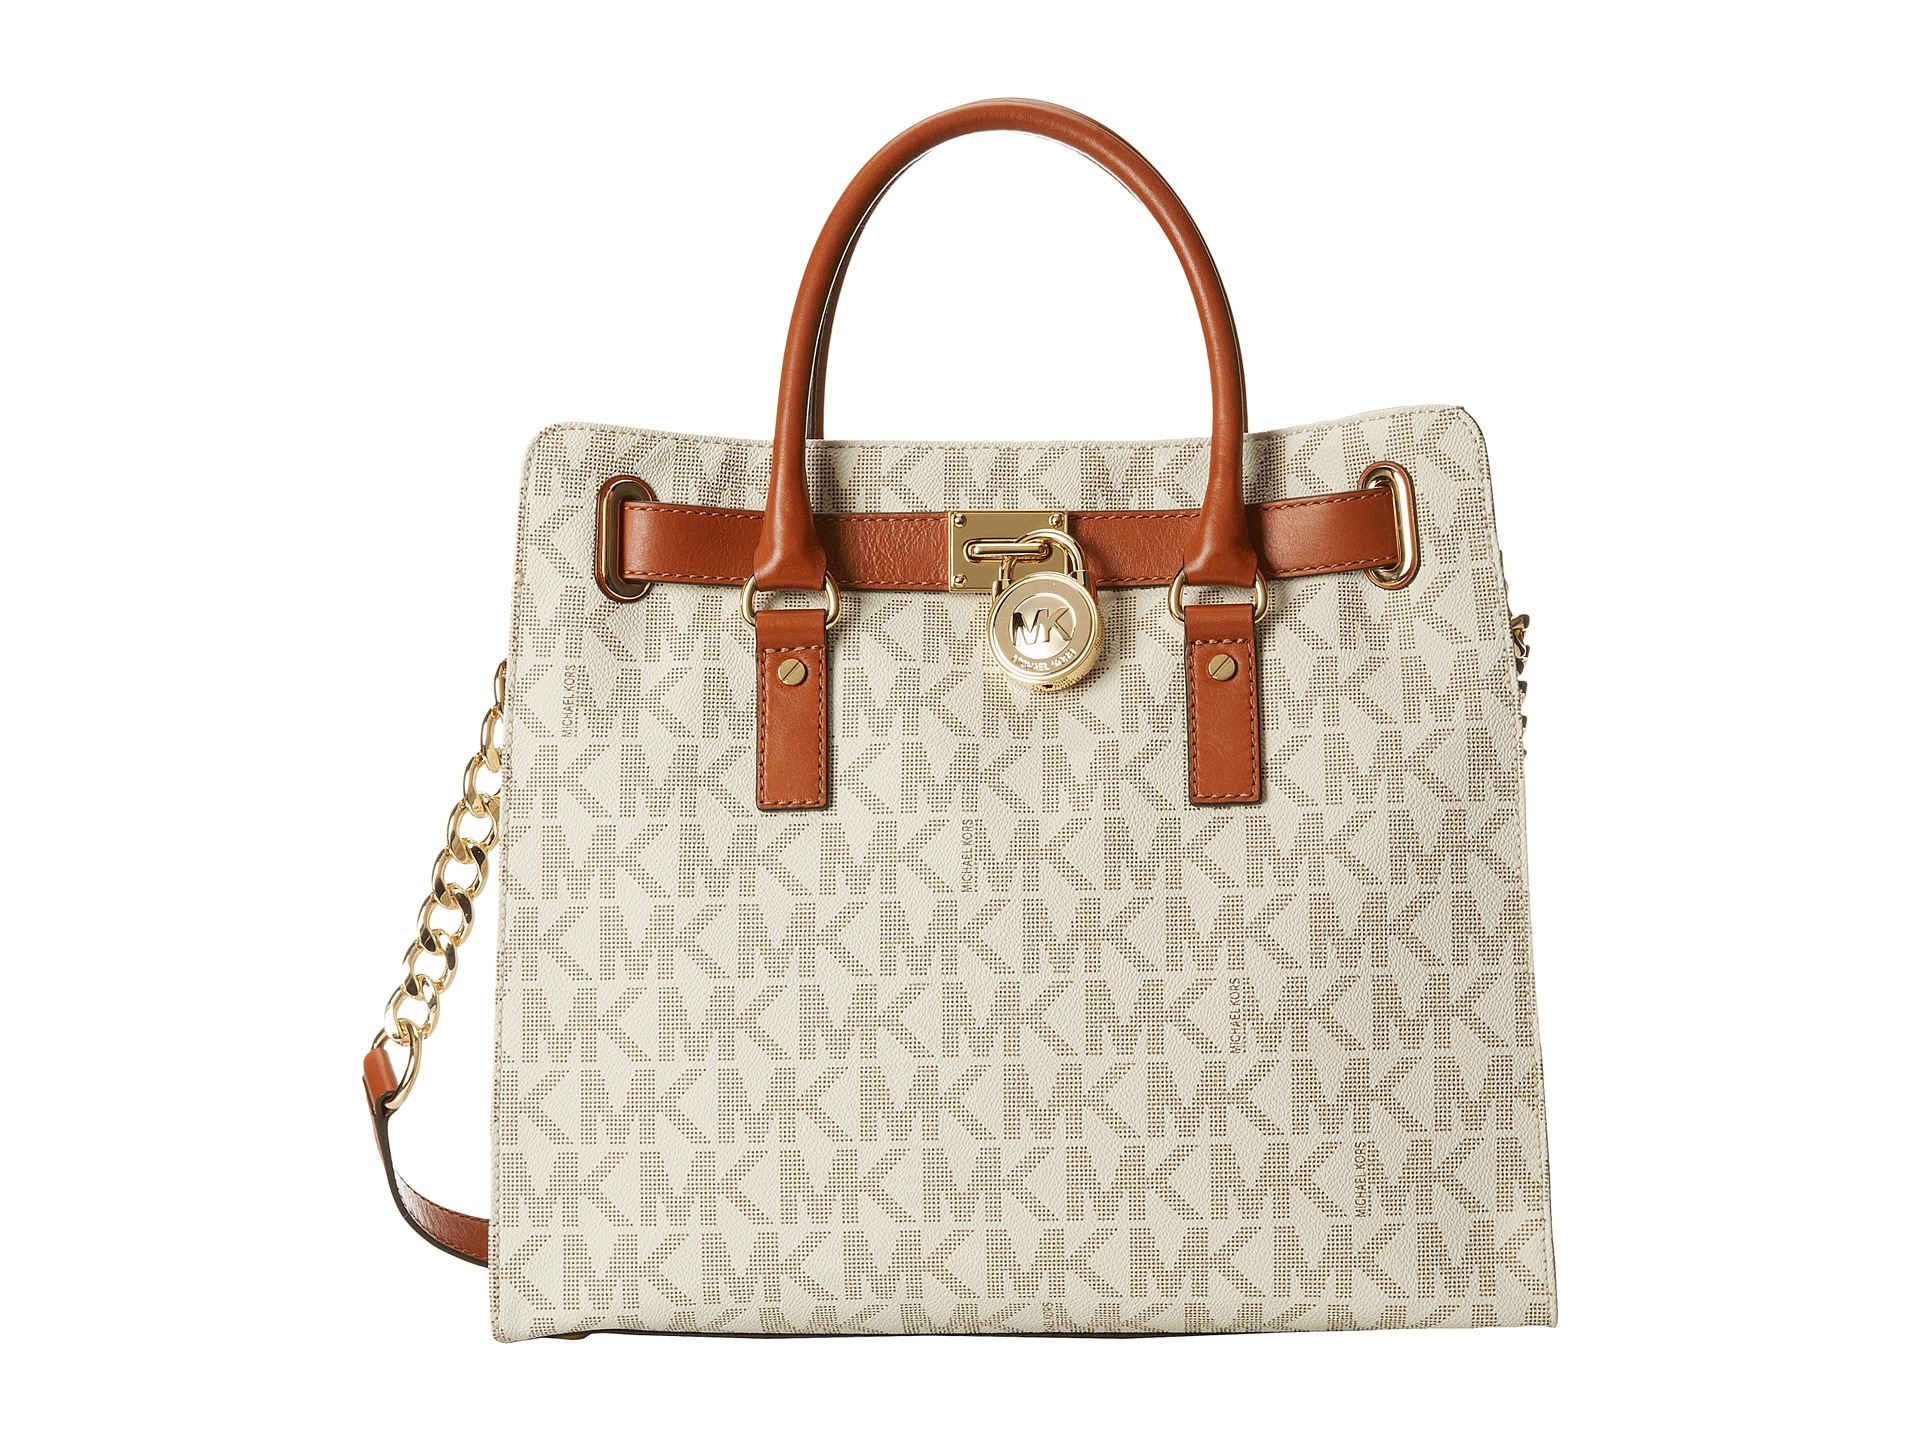 Lyst - MICHAEL Michael Kors Hamilton North south Tote With Pvc Logo in Brown b70d345400